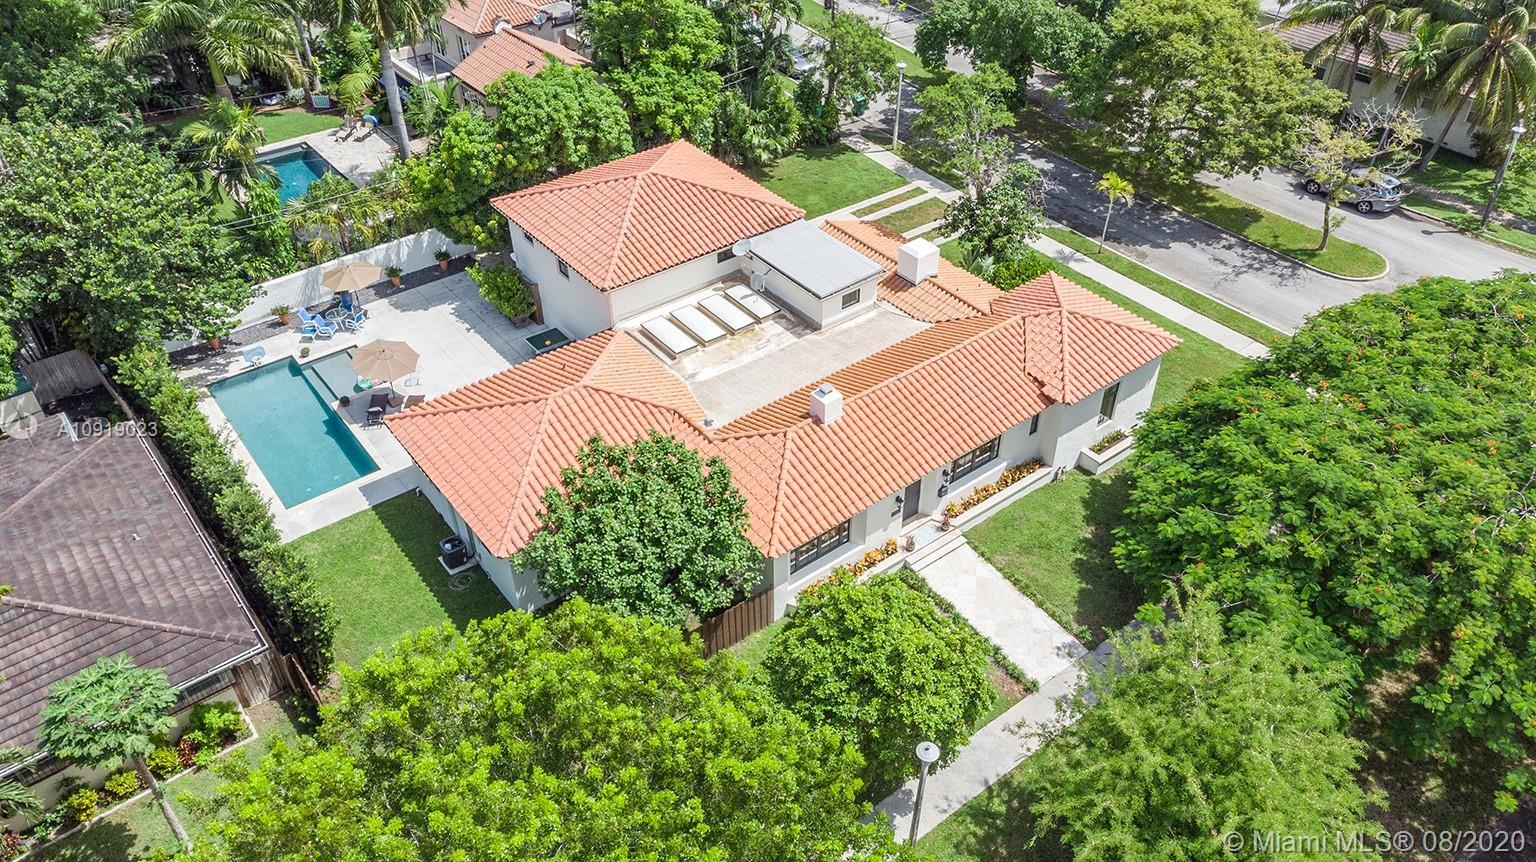 This one checks ALL the boxes:  Remodeled spacious 5BR/4.5BA Morningside pool home, on 1/3 of an acr